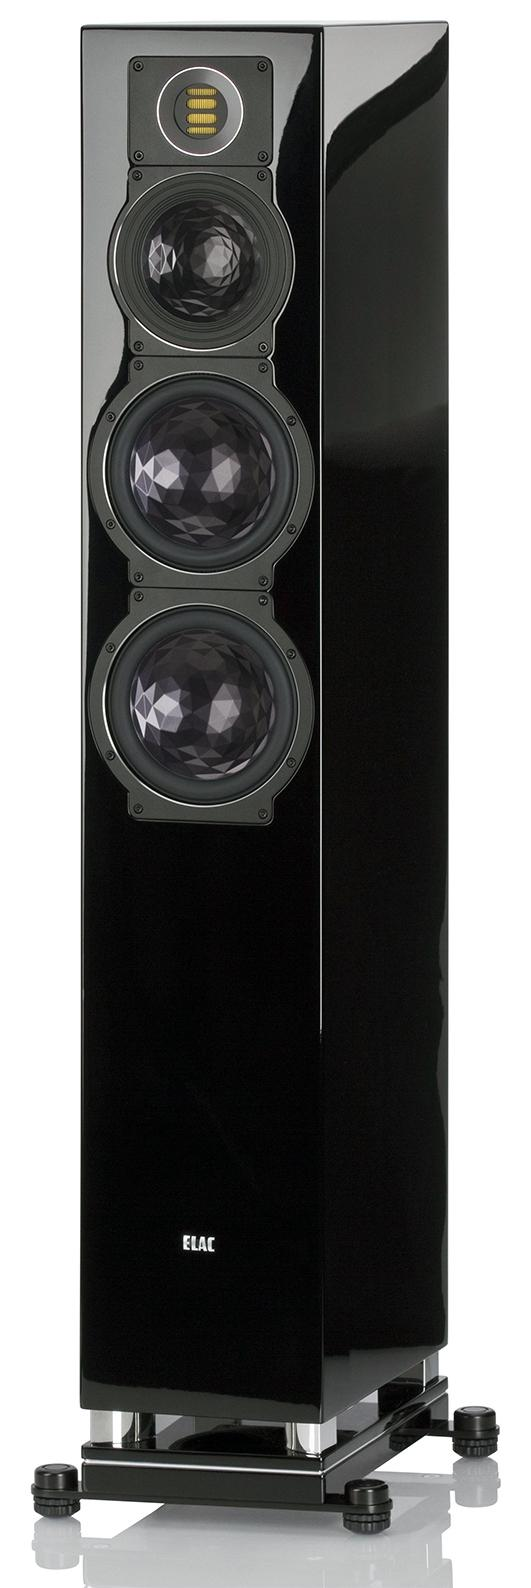 ELAC FS 409 black high gloss finish